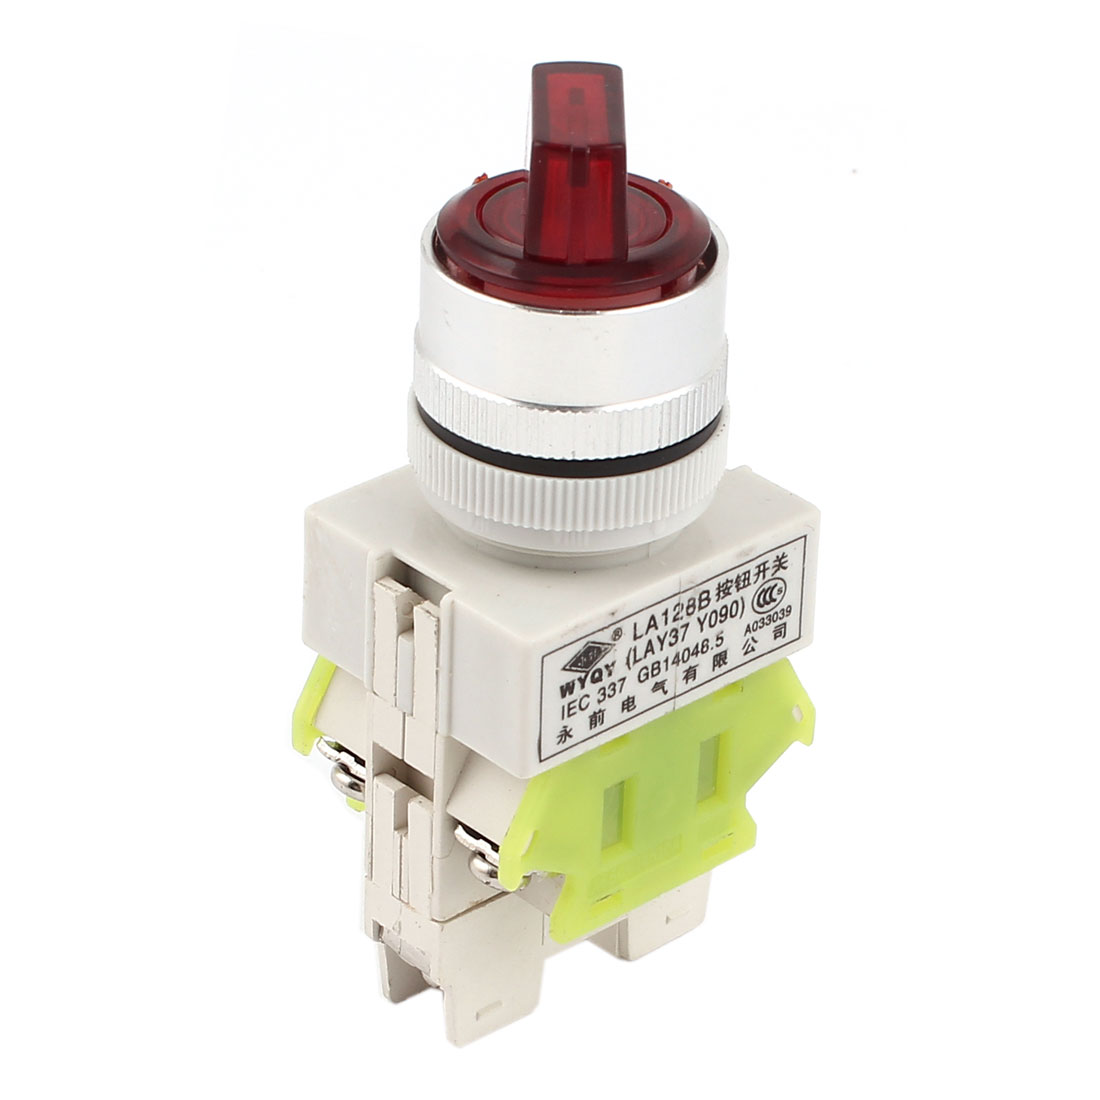 AC220V 10A DPDT 6 Terminals 3 Position Control Red Light Rotary Selector Latching Switch